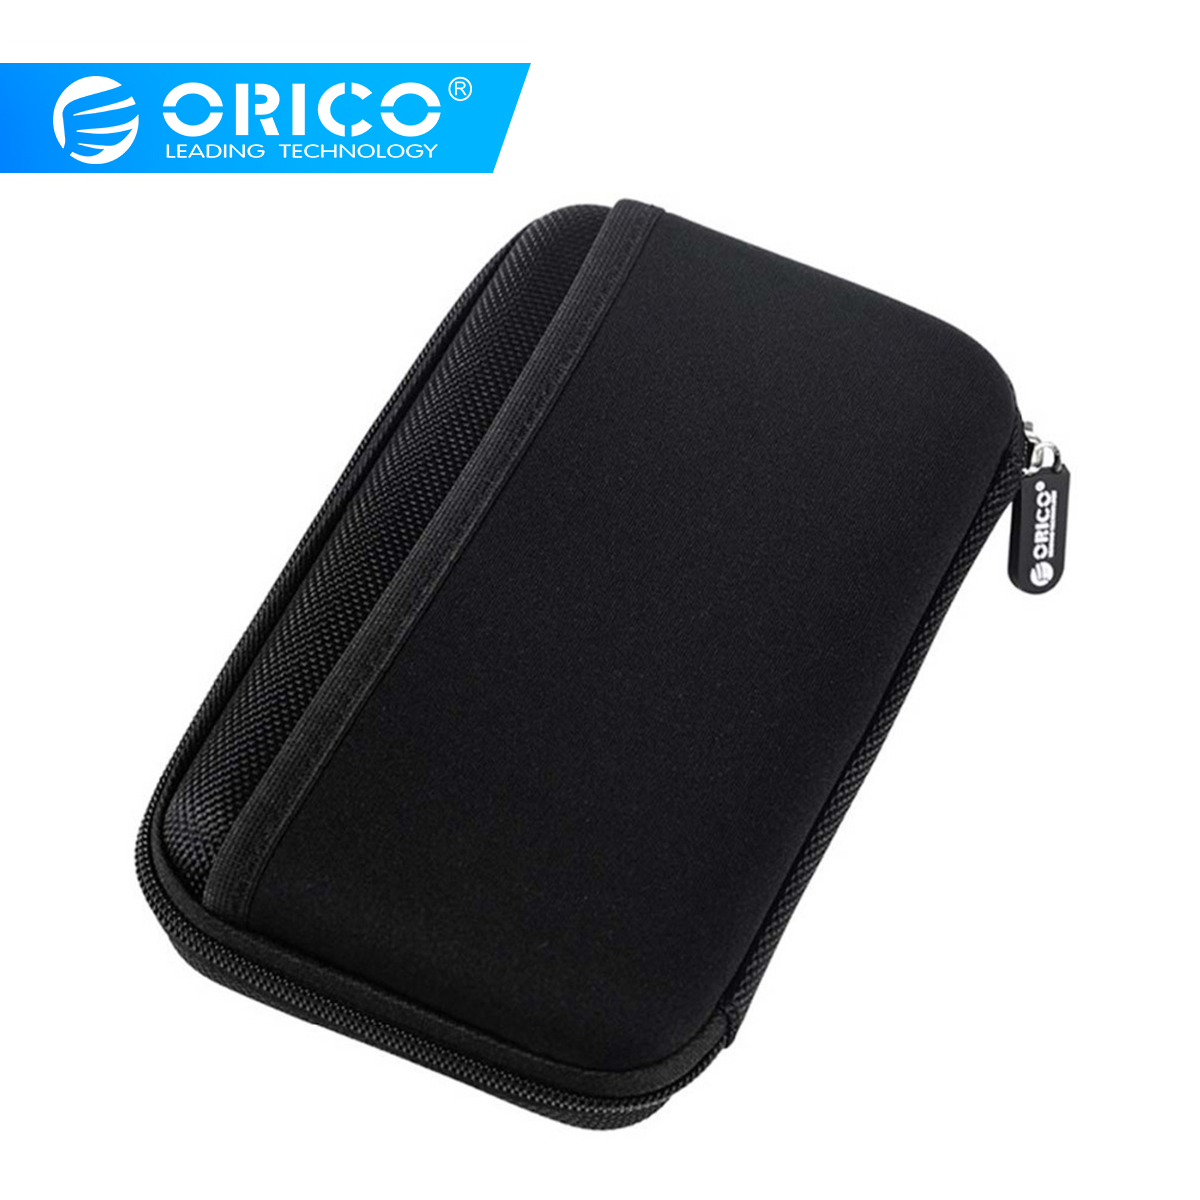 ORICO 2.5 Inch Storage Bag For 2.5inch HDD SSD USB Cables USB Chargers Power Bank Earphone And More